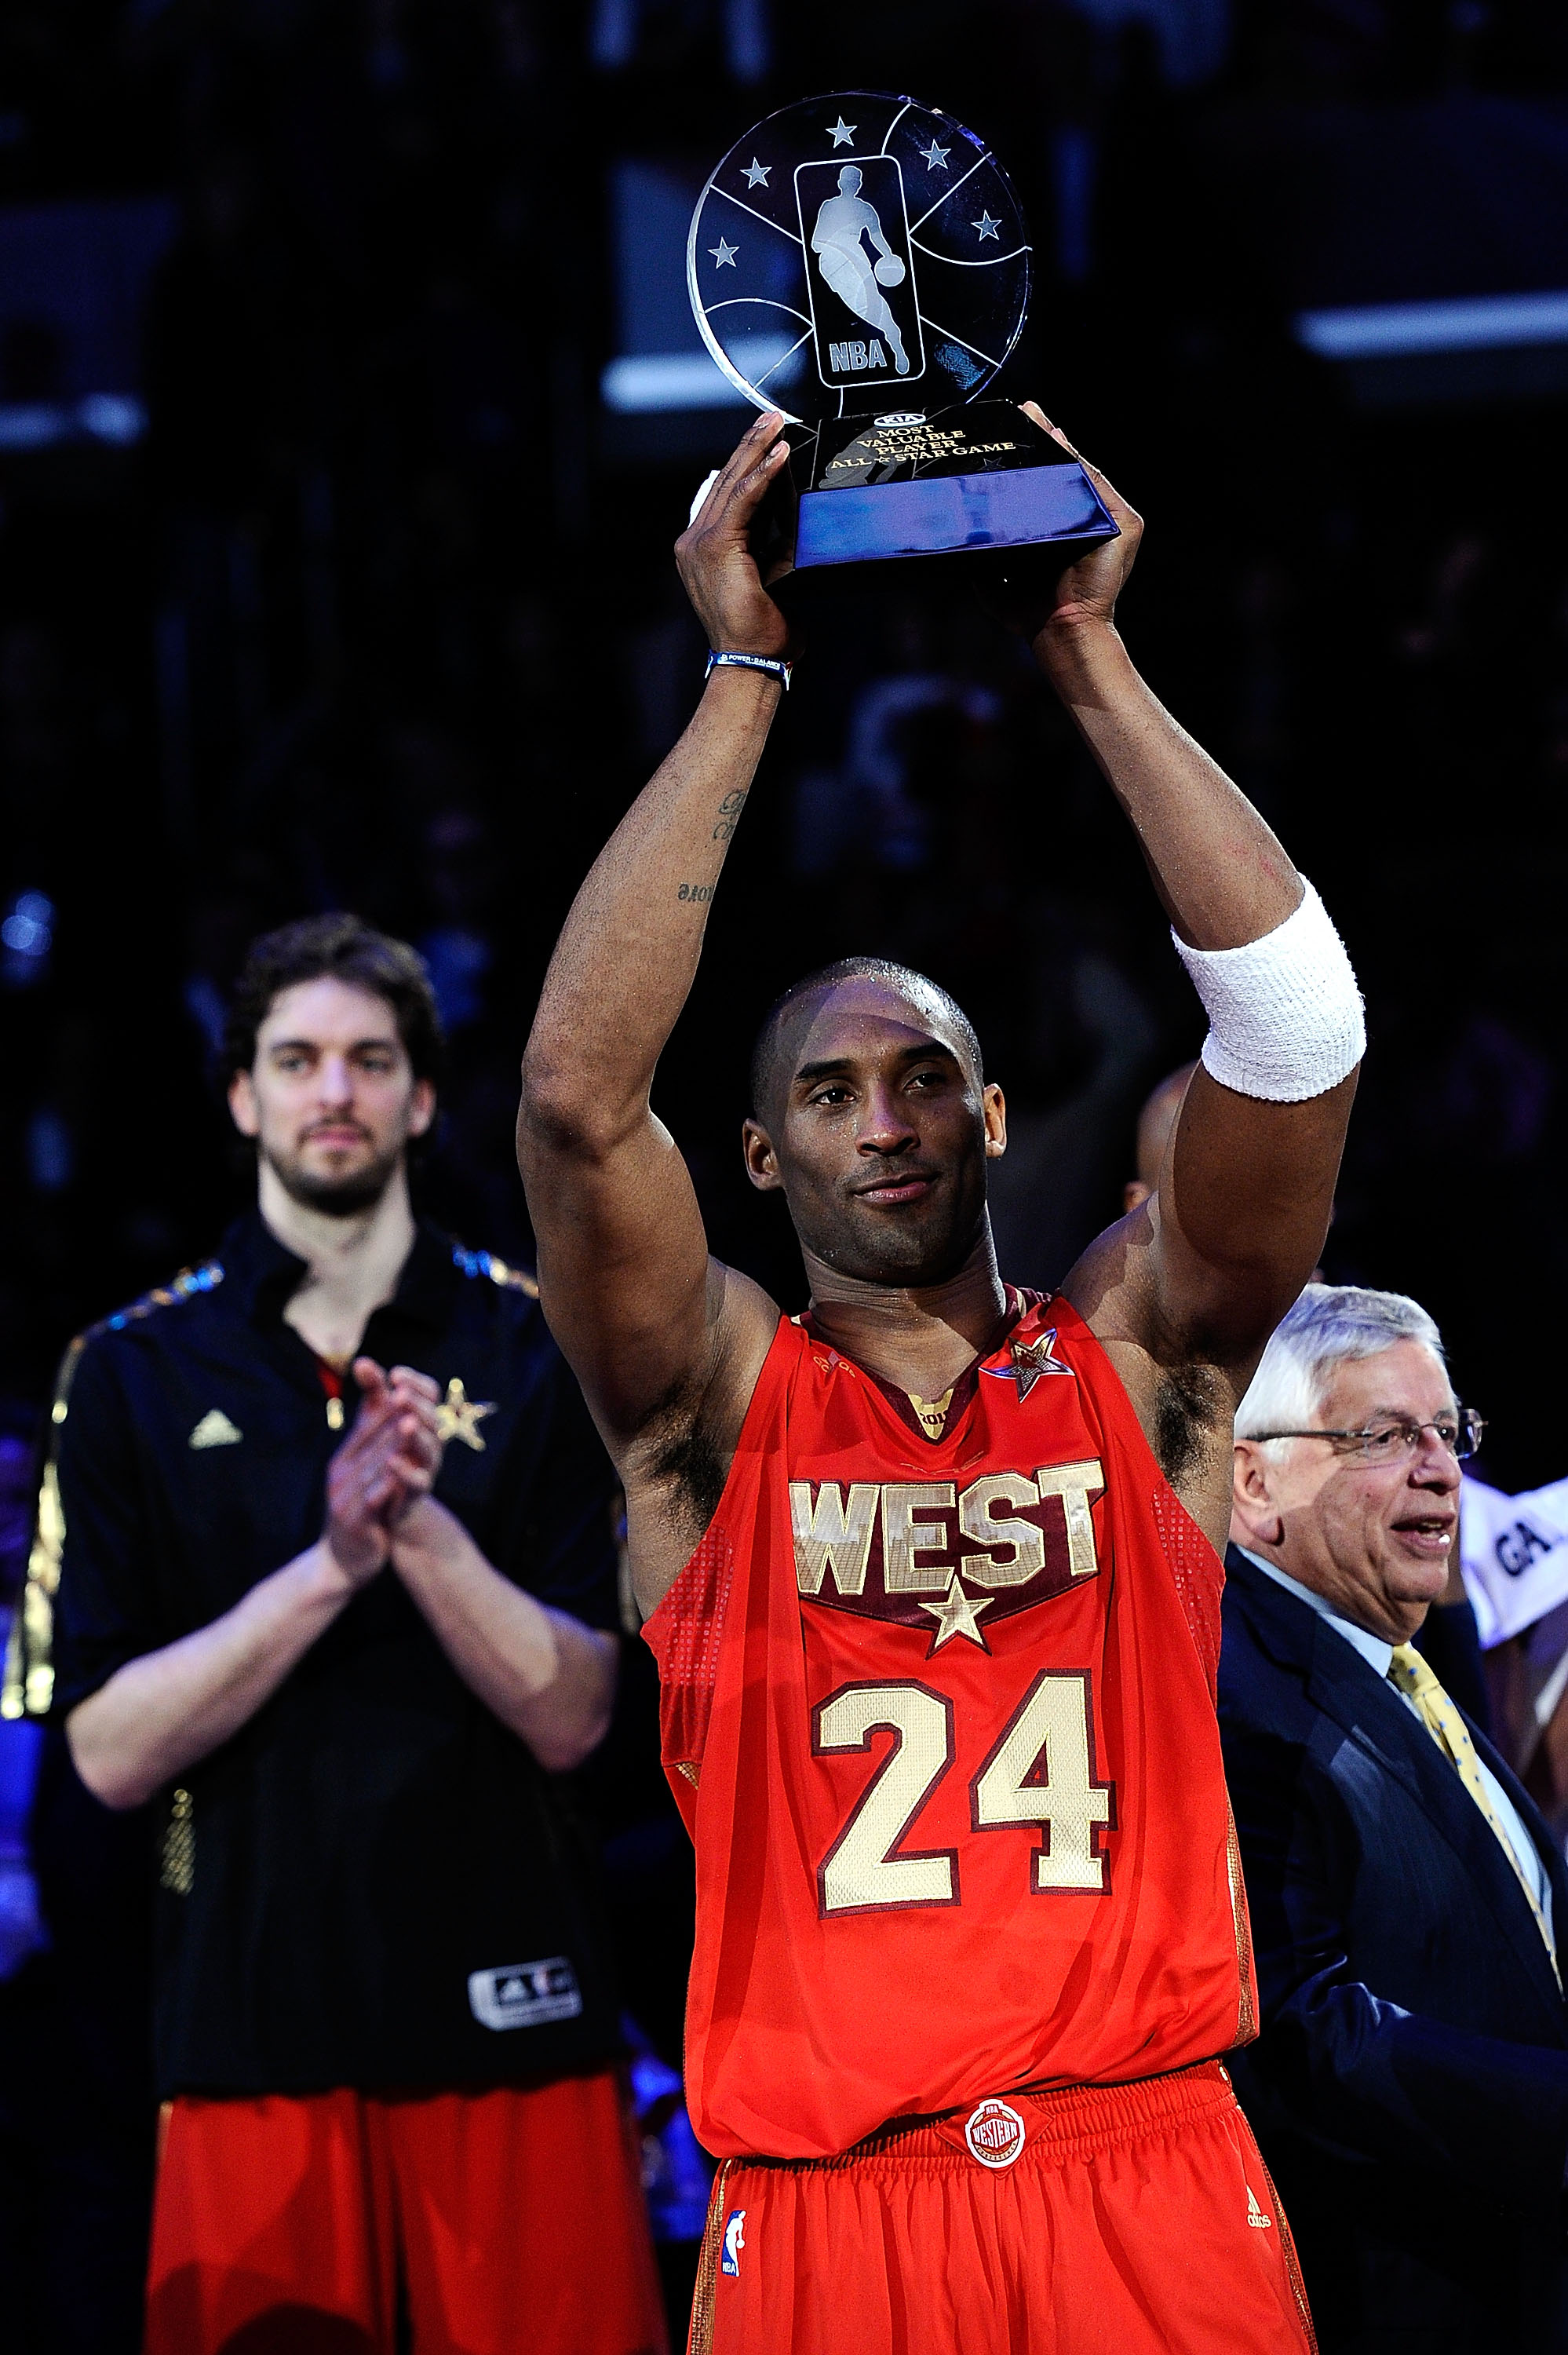 Kobe Bryant winning his record-tying fourth All-Star MVP Award